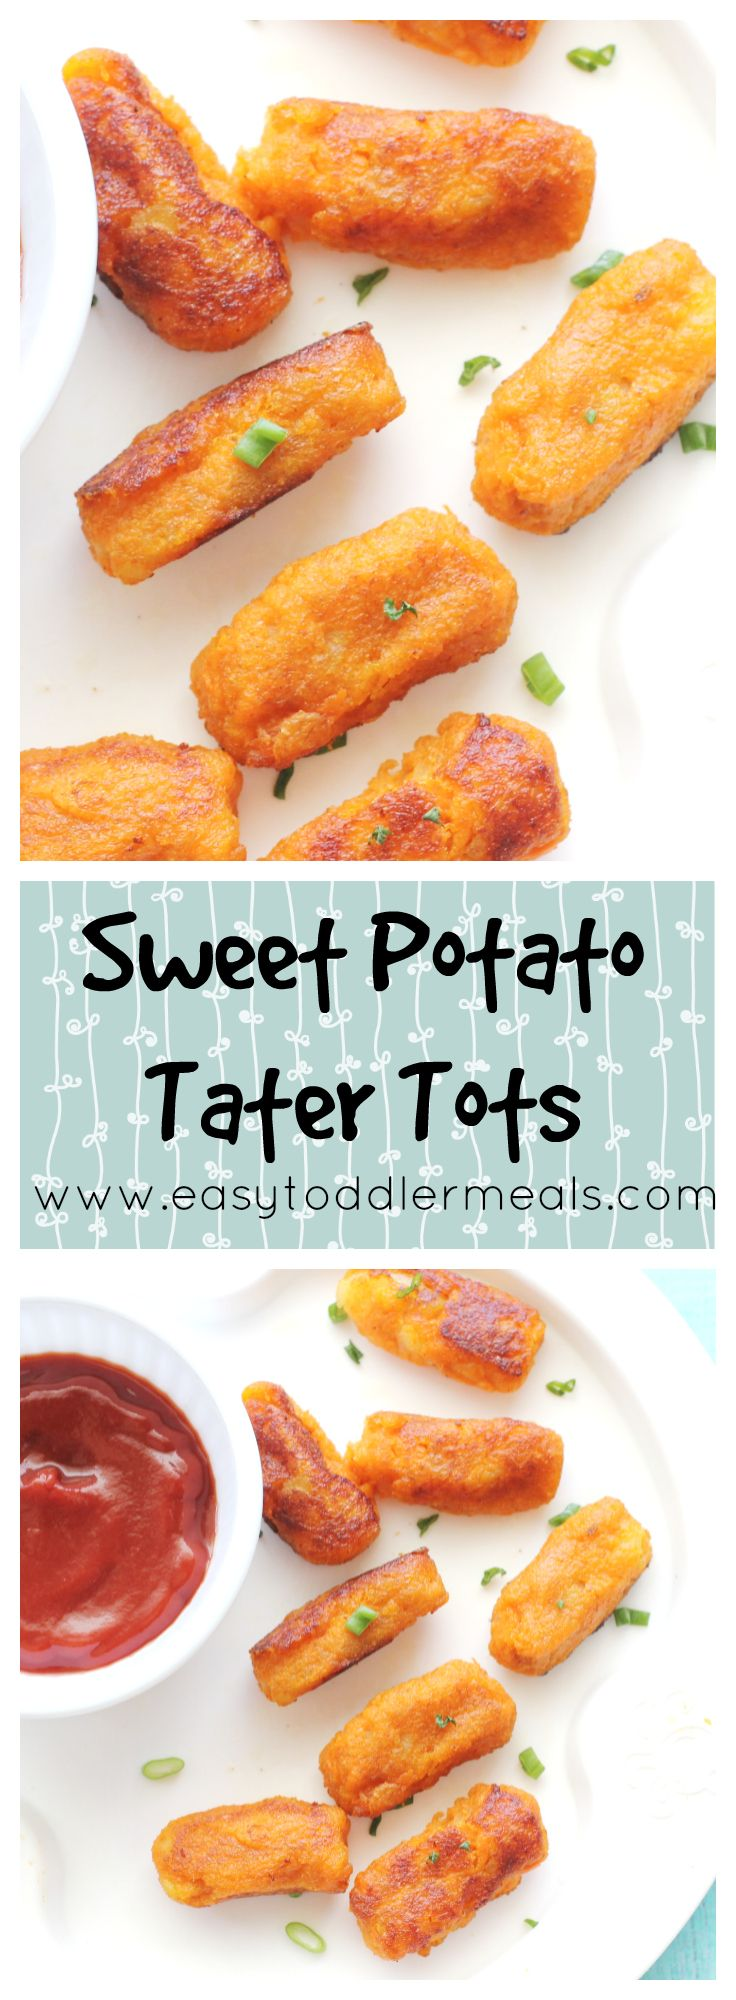 Sweet Potato Tater Tots